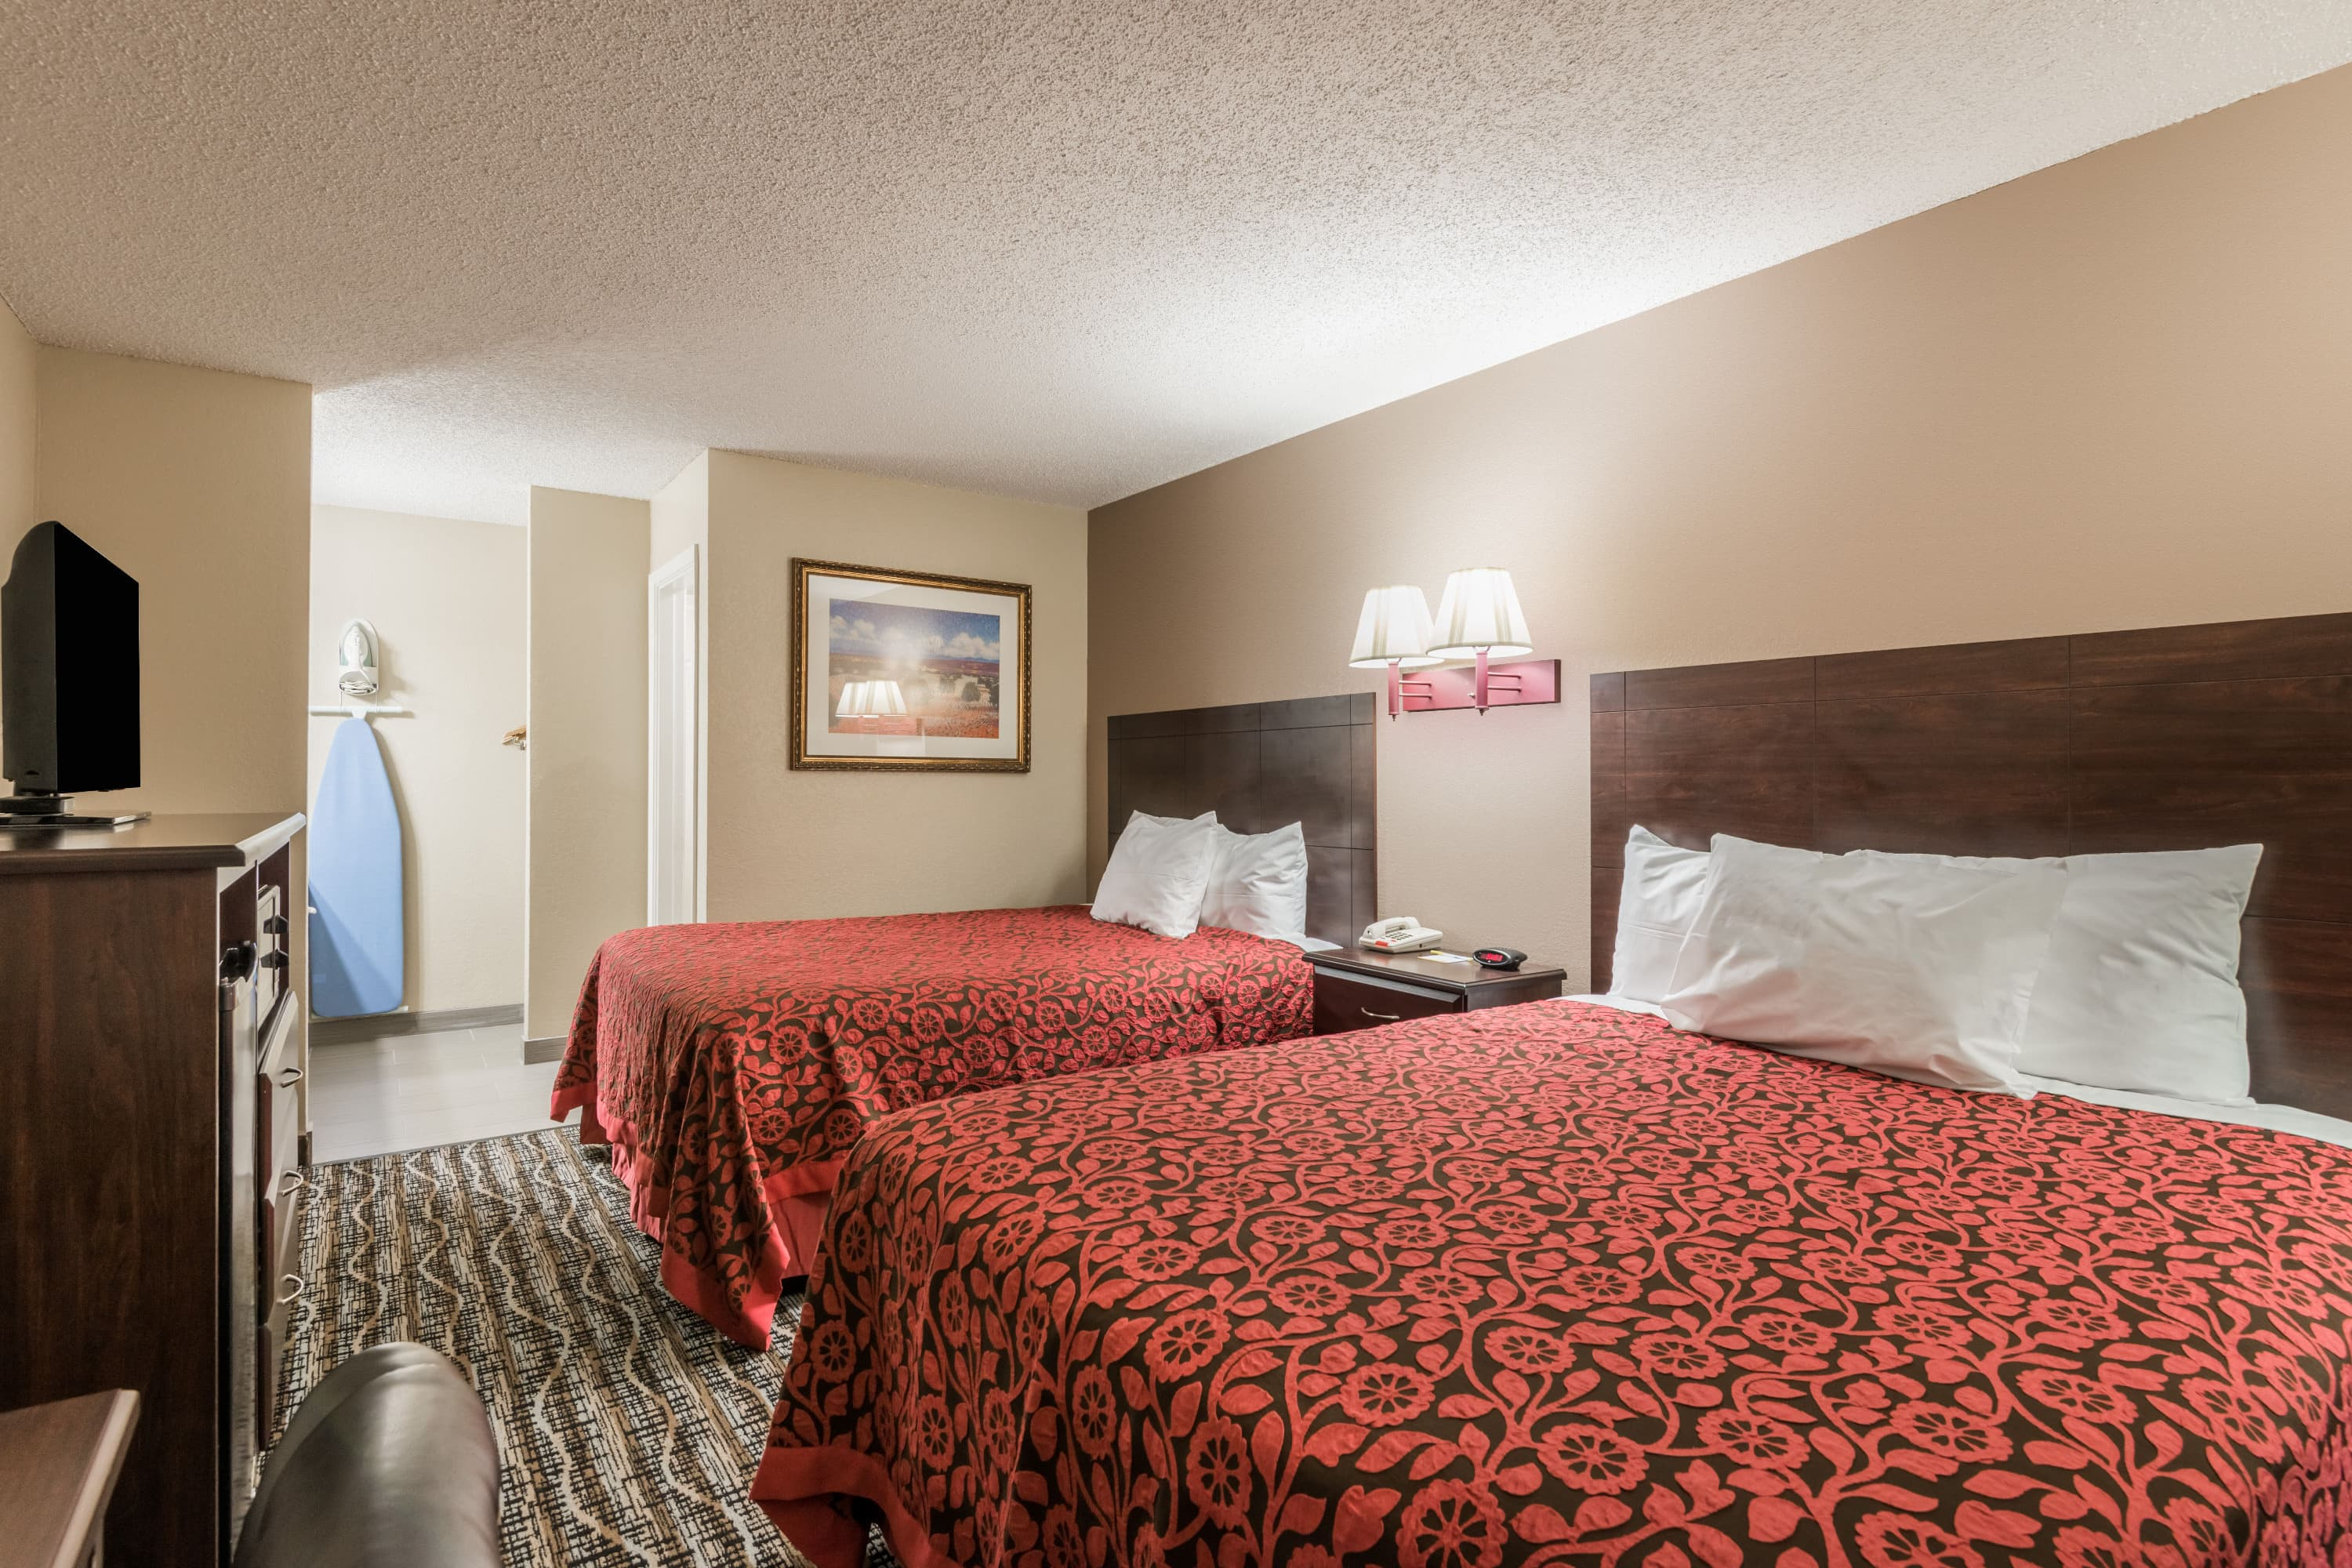 Guest room at the Days Inn - San Marcos in San Marcos, Texas